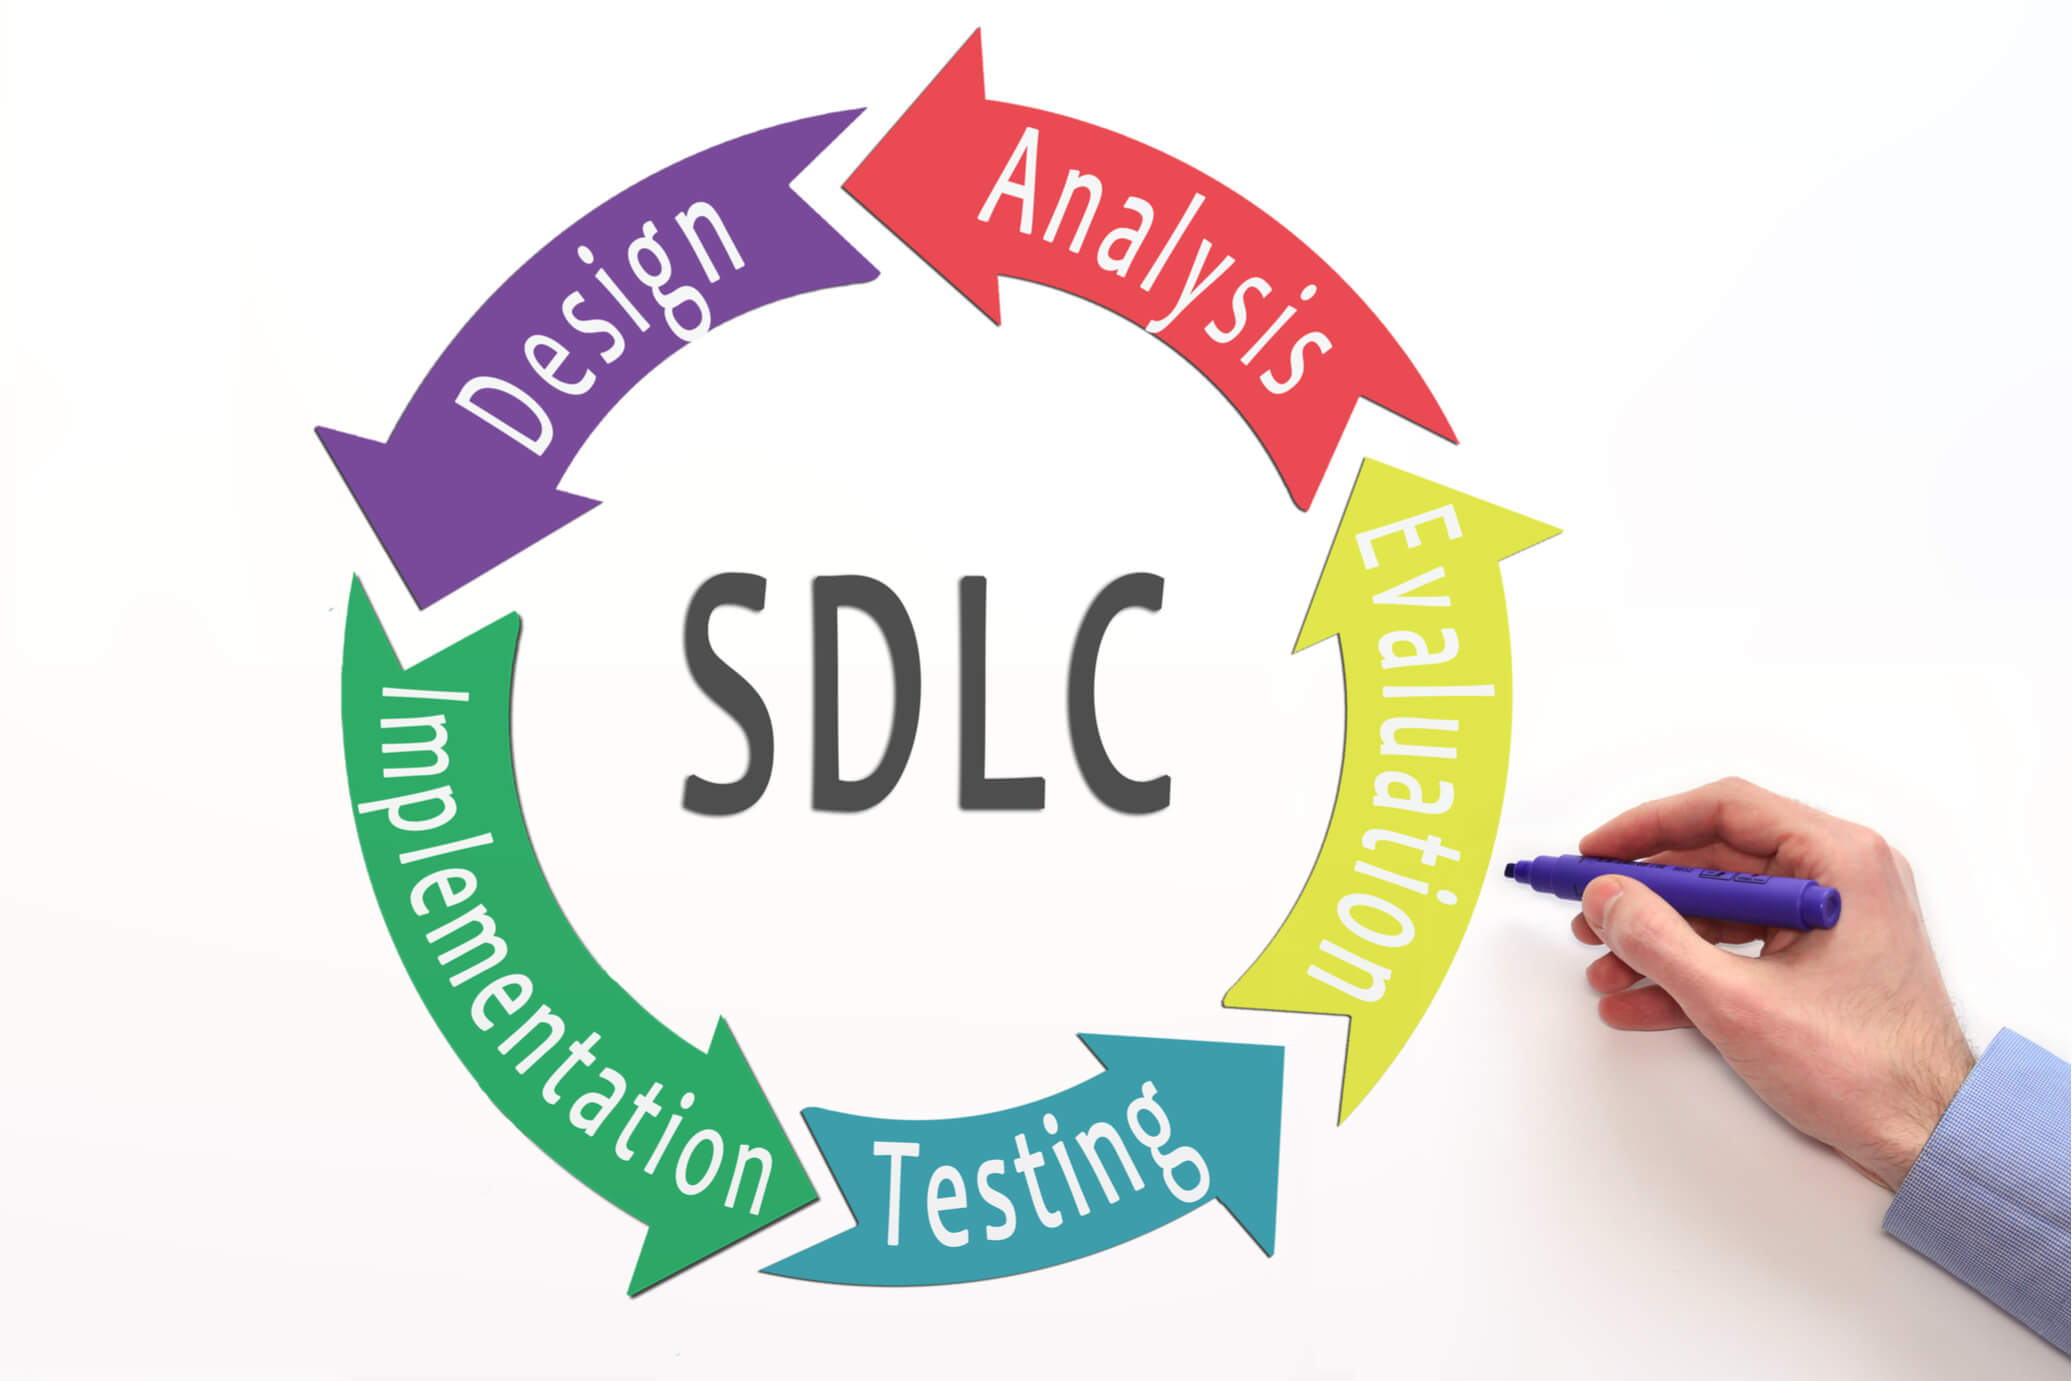 6 basic sdlc methodologies: which one is best?